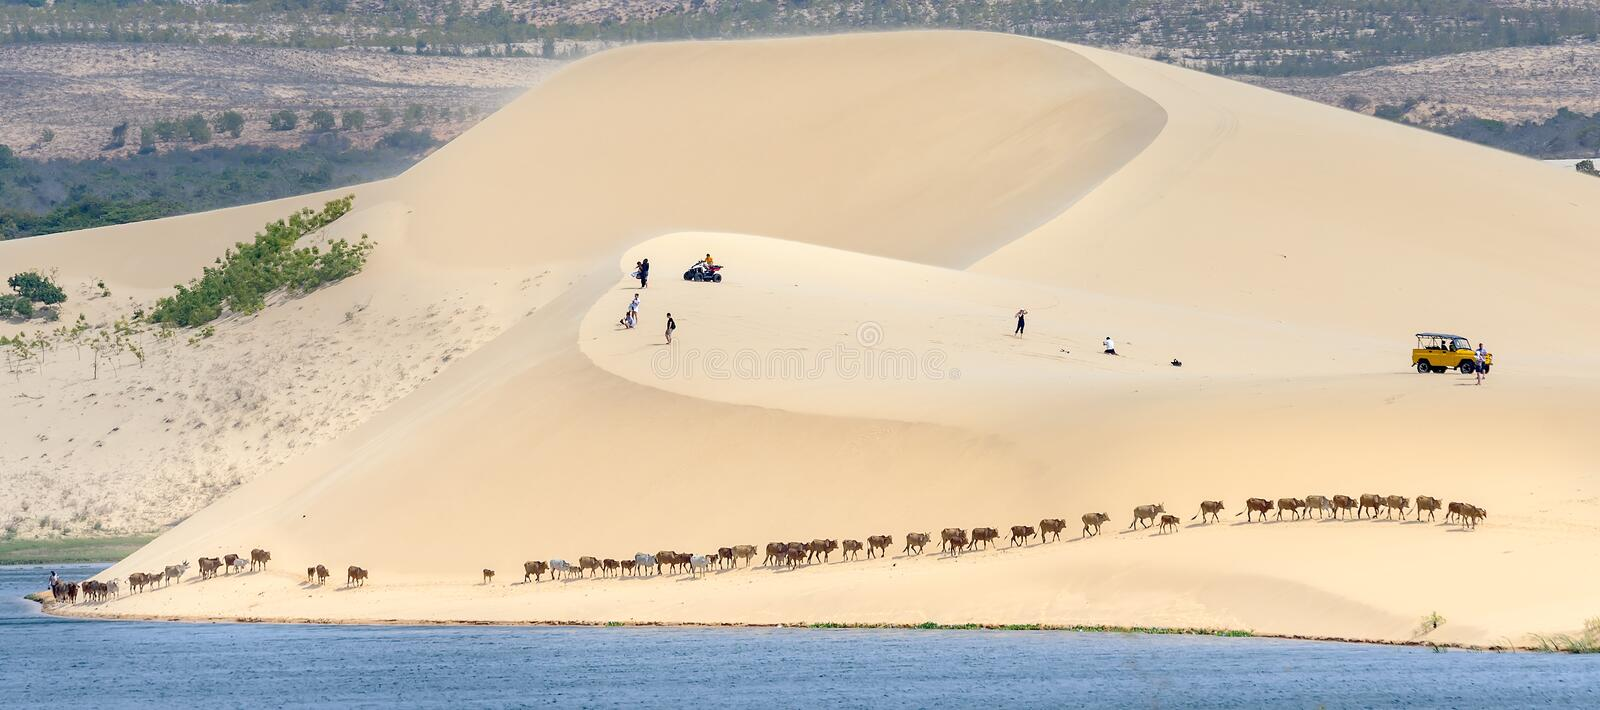 Cows migrate through the white sand hills. Muine, Vietnam - March 30th, 2017: Cows migrate through the white sand hills at noon in the amazement of visitors are royalty free stock photos